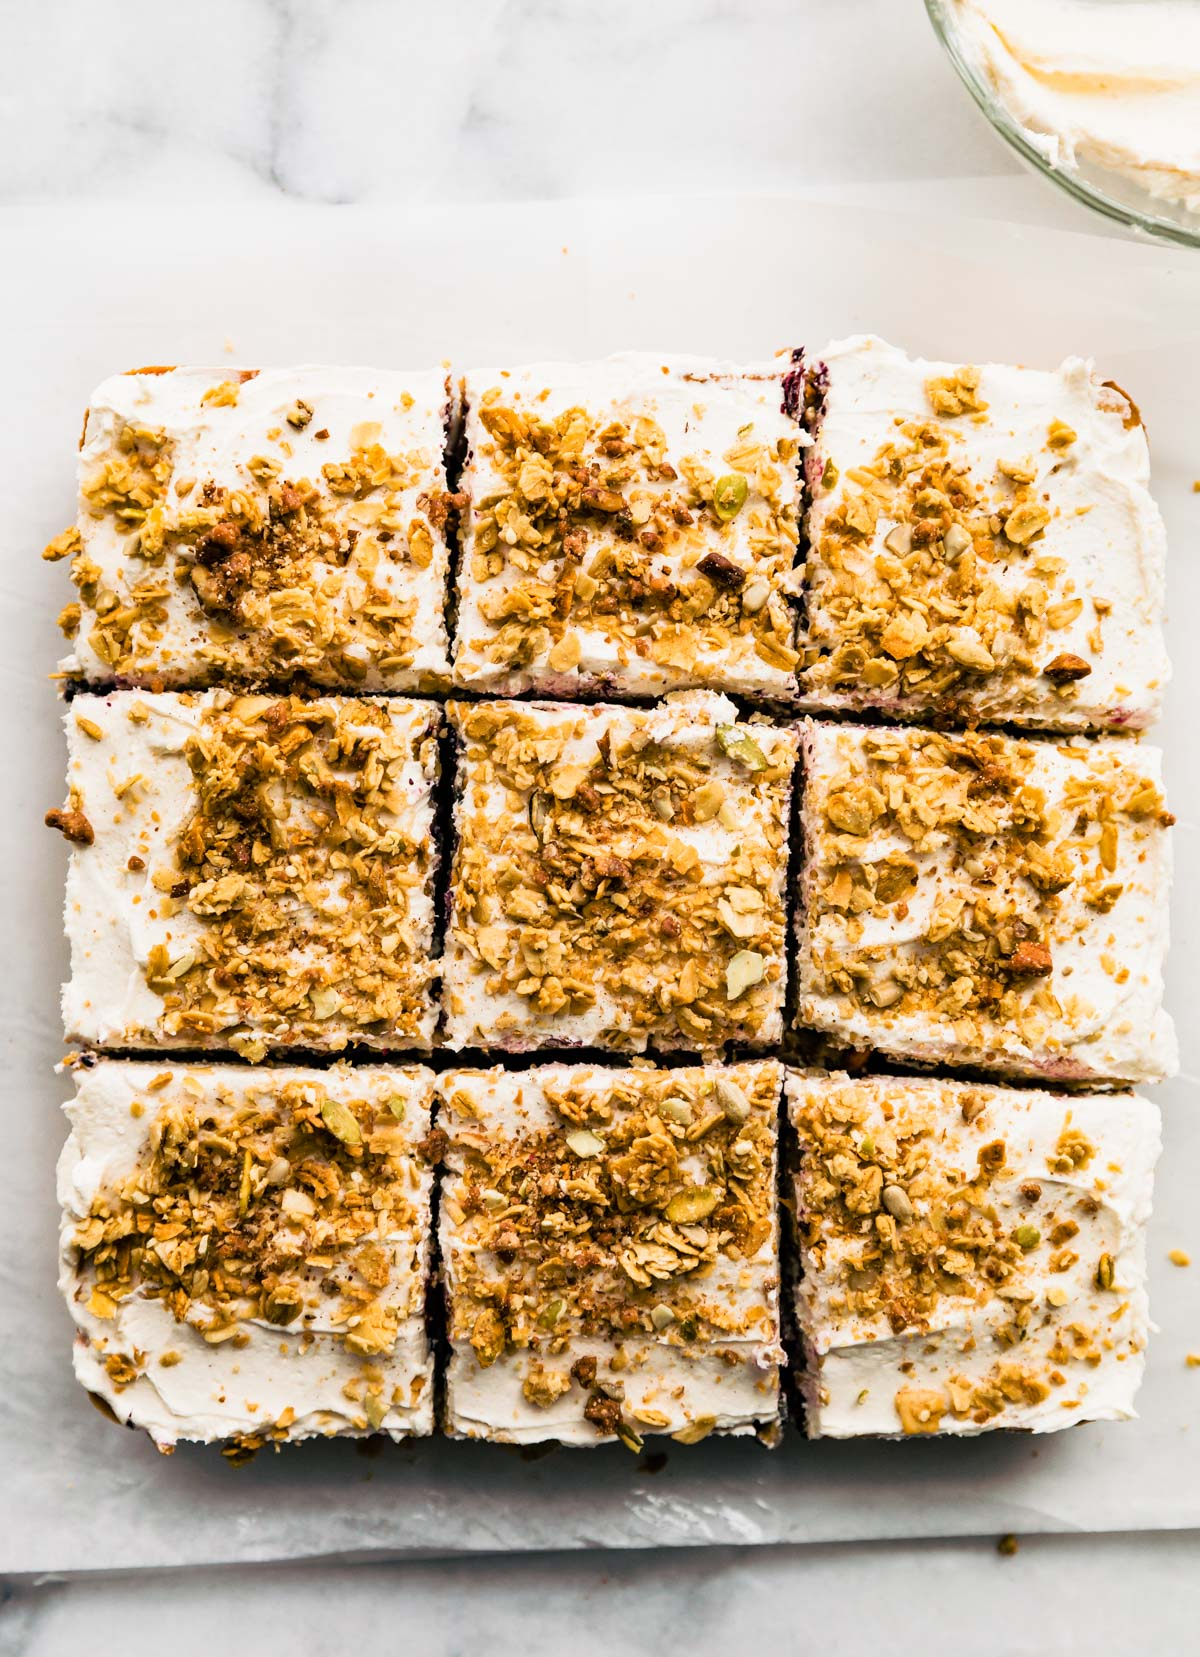 sliced carrot cake with granola topping